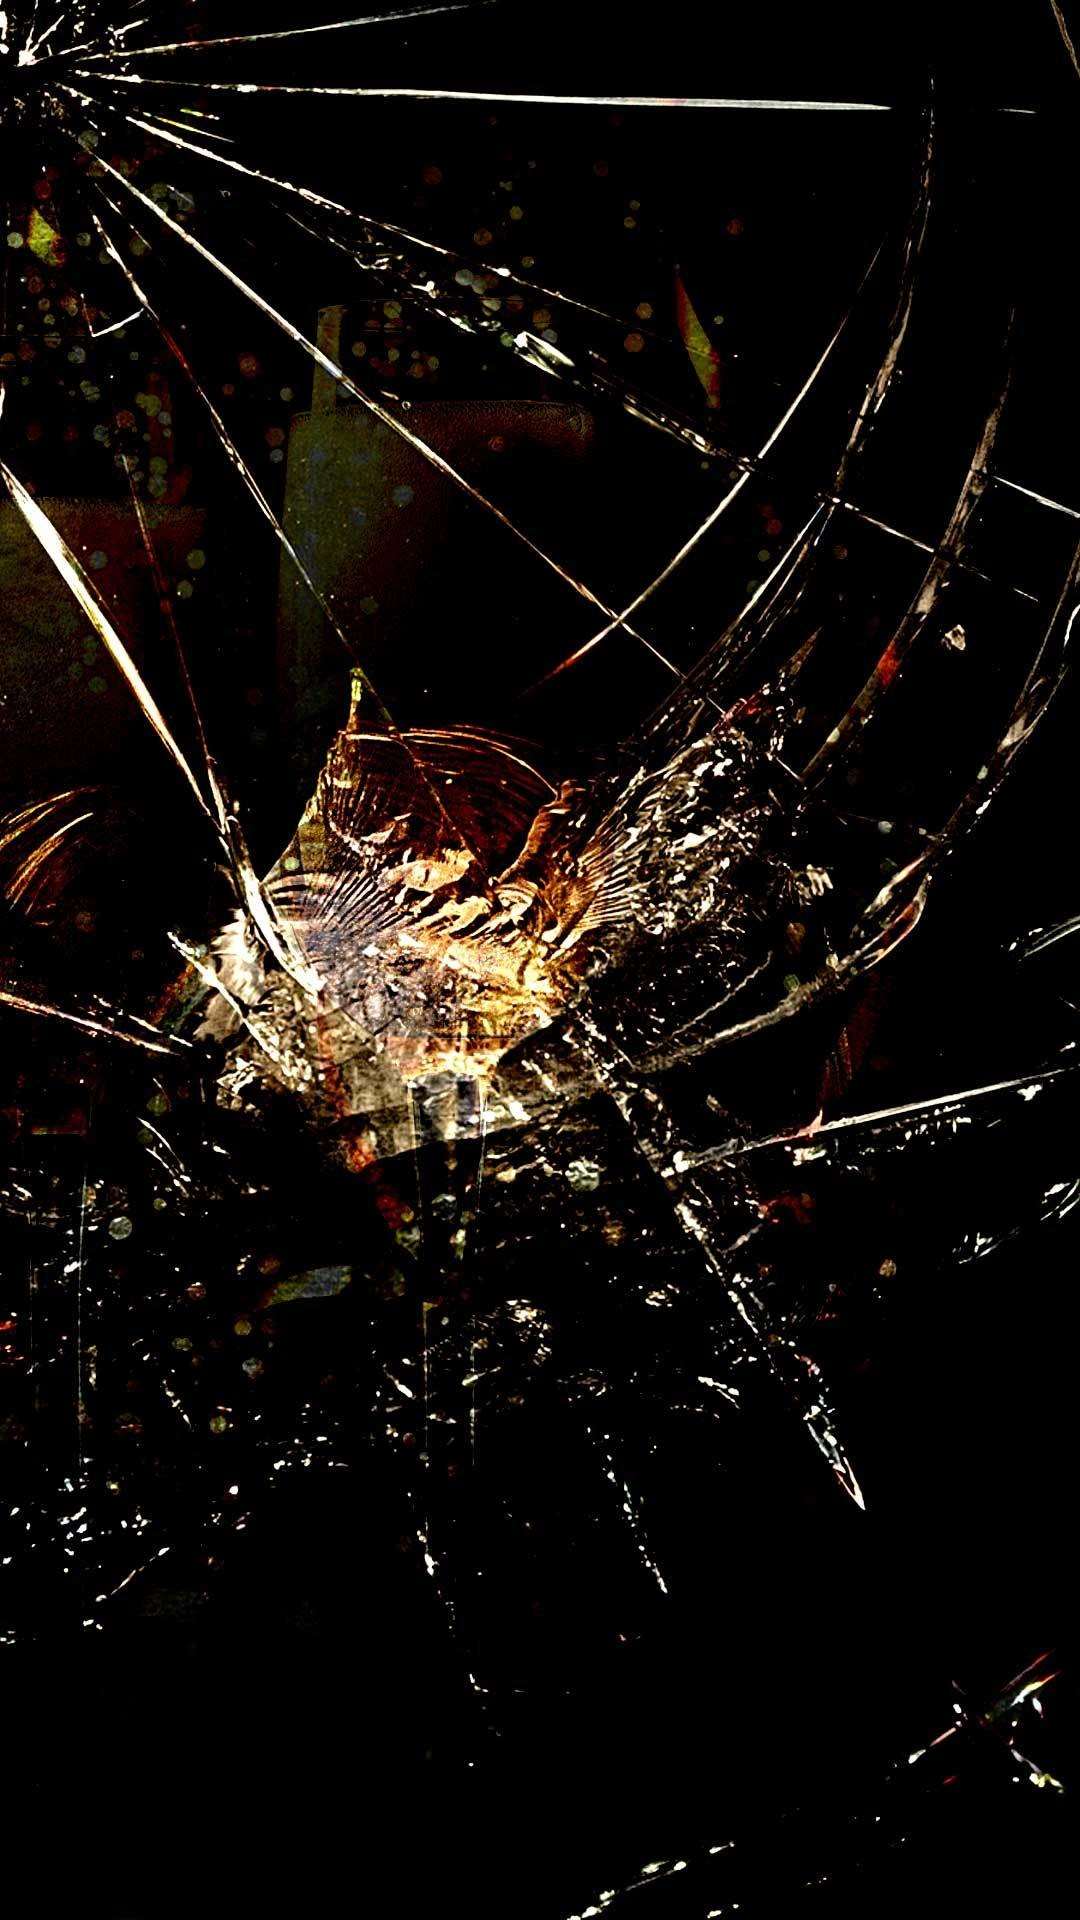 1920x1080 6 Broken Screen Wallpaper Prank For IPhone IPod Windows And Mac